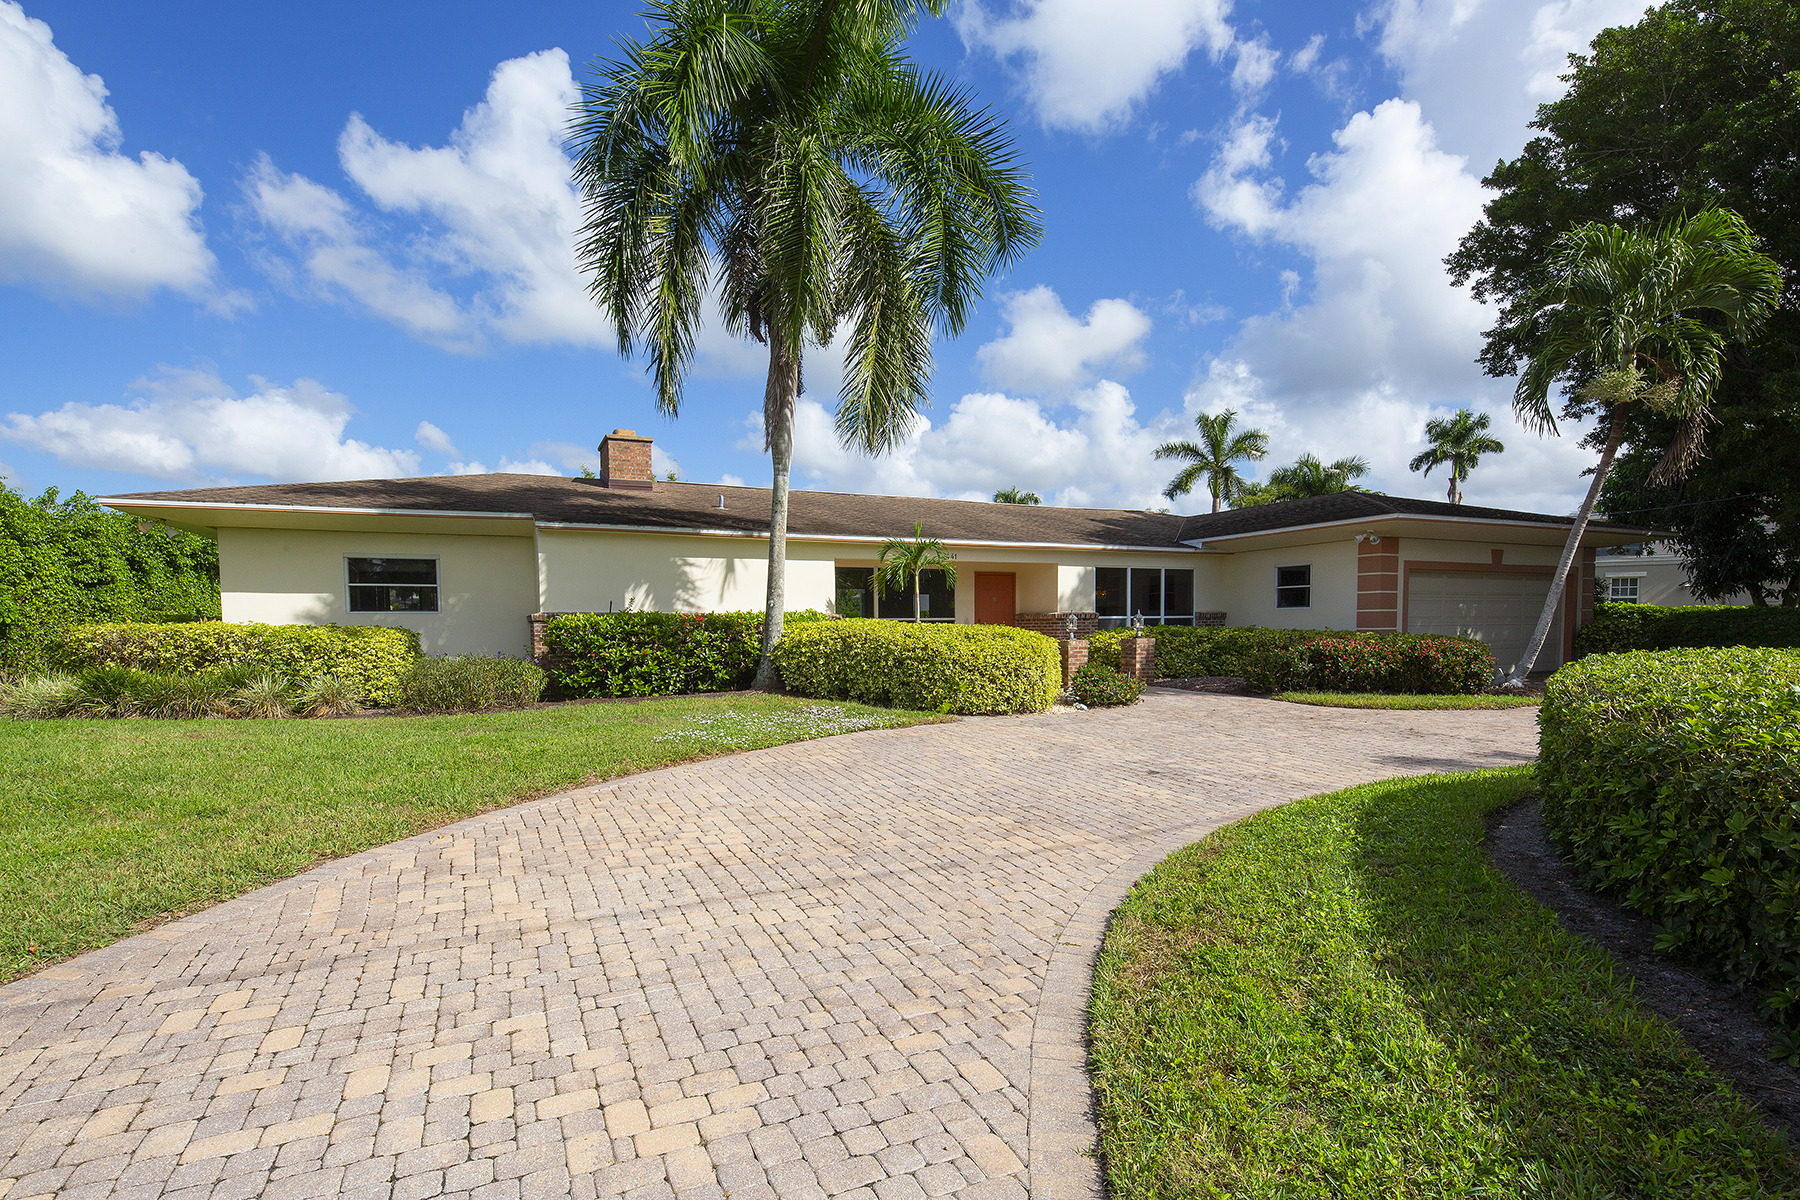 House for Sale at Naples 441 Mooring Line Dr Naples, Florida 34102 United States